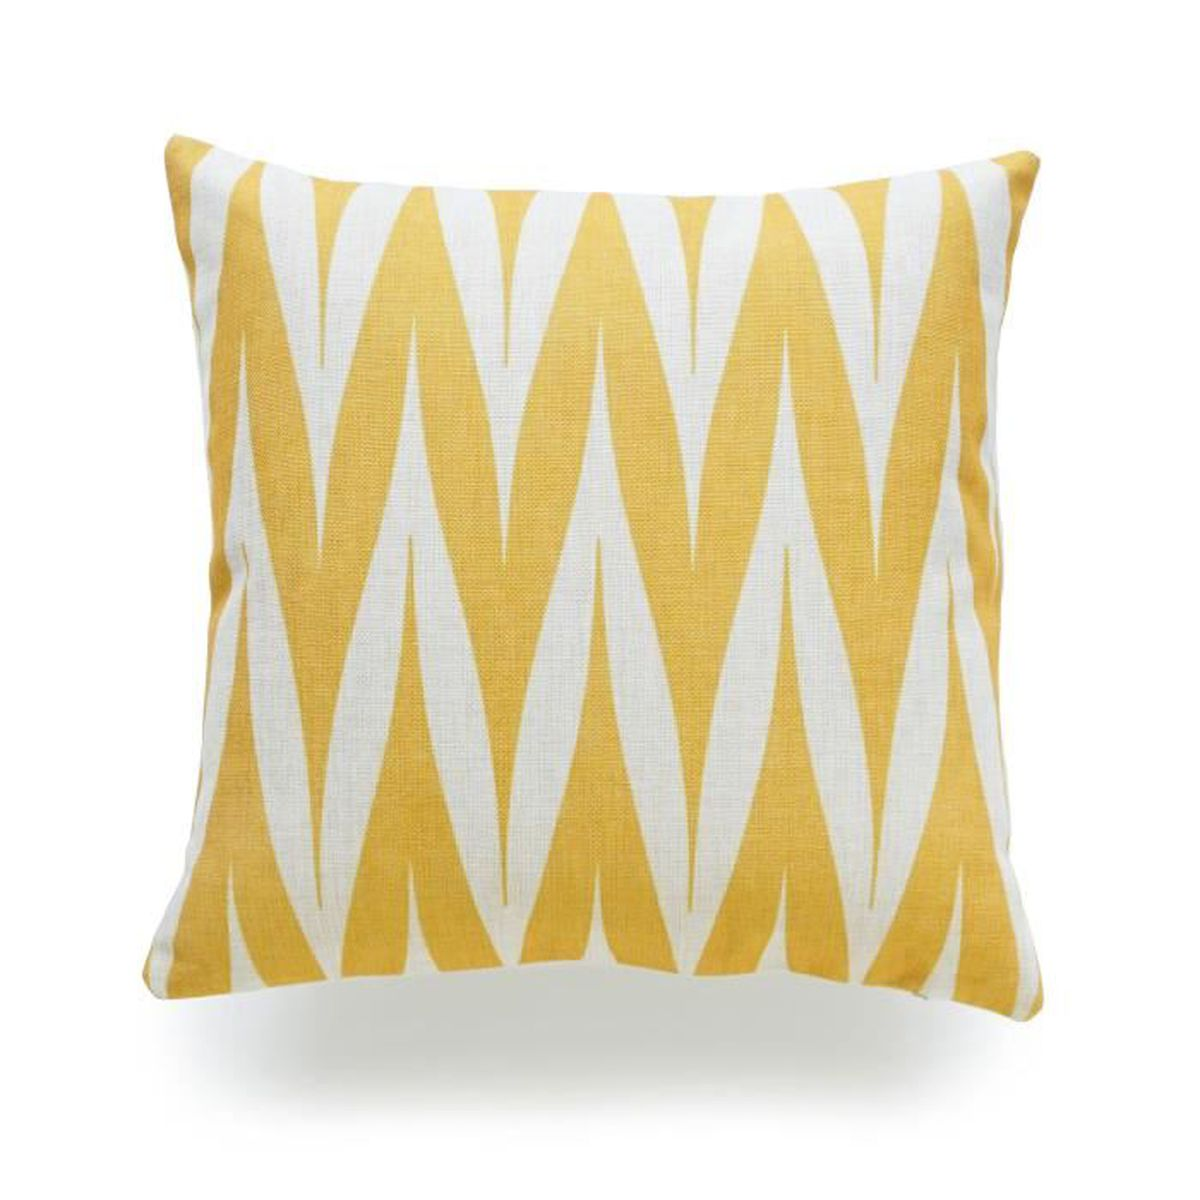 hofdeco housse de coussin d coratif moutarde jaune g om trique tribal zigzag pointe jaune coton. Black Bedroom Furniture Sets. Home Design Ideas